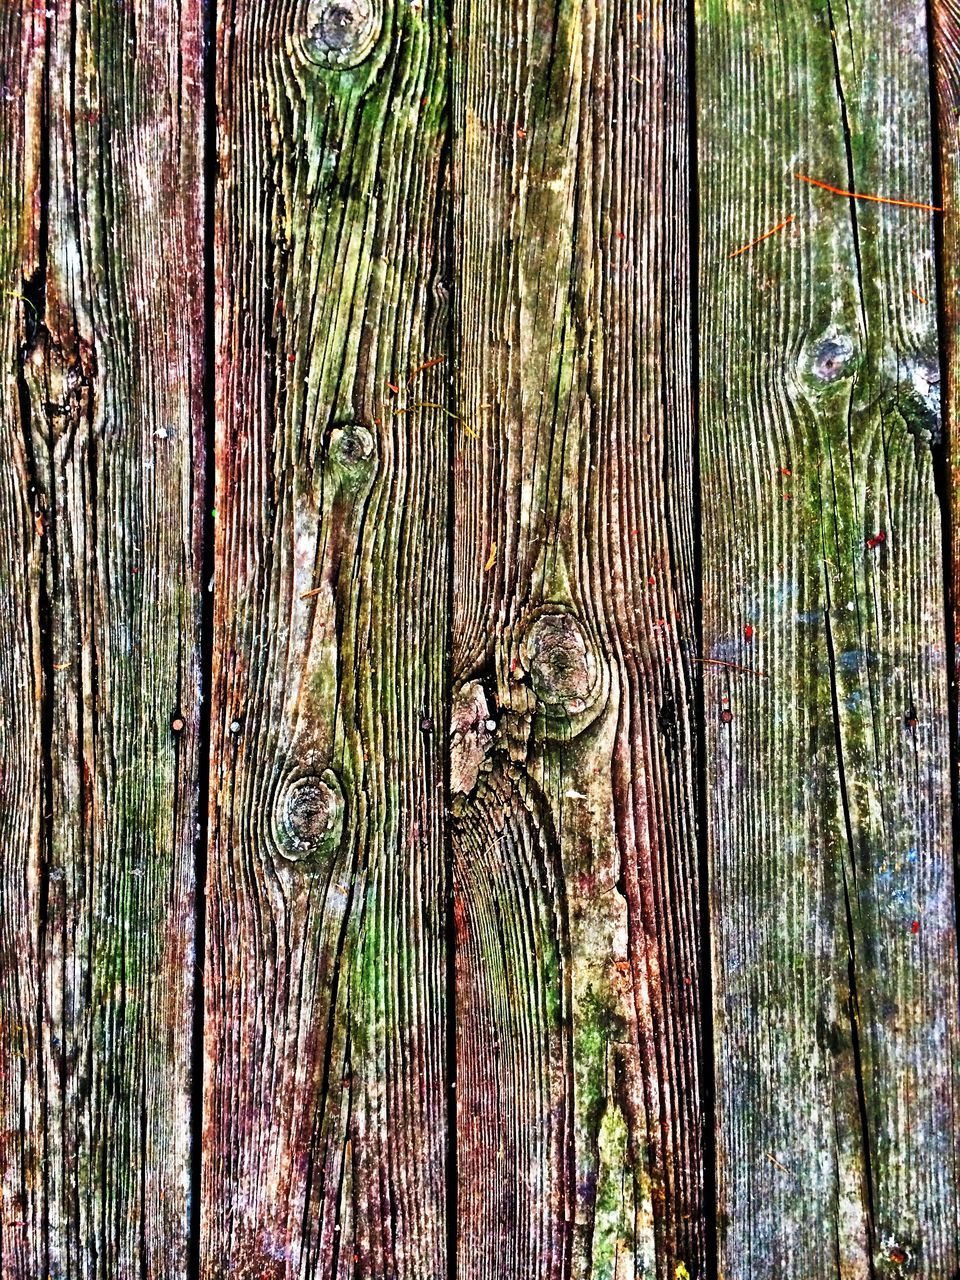 tree trunk, nature, wood - material, backgrounds, full frame, tree, outdoors, no people, growth, textured, day, close-up, wood grain, tree stump, tree ring